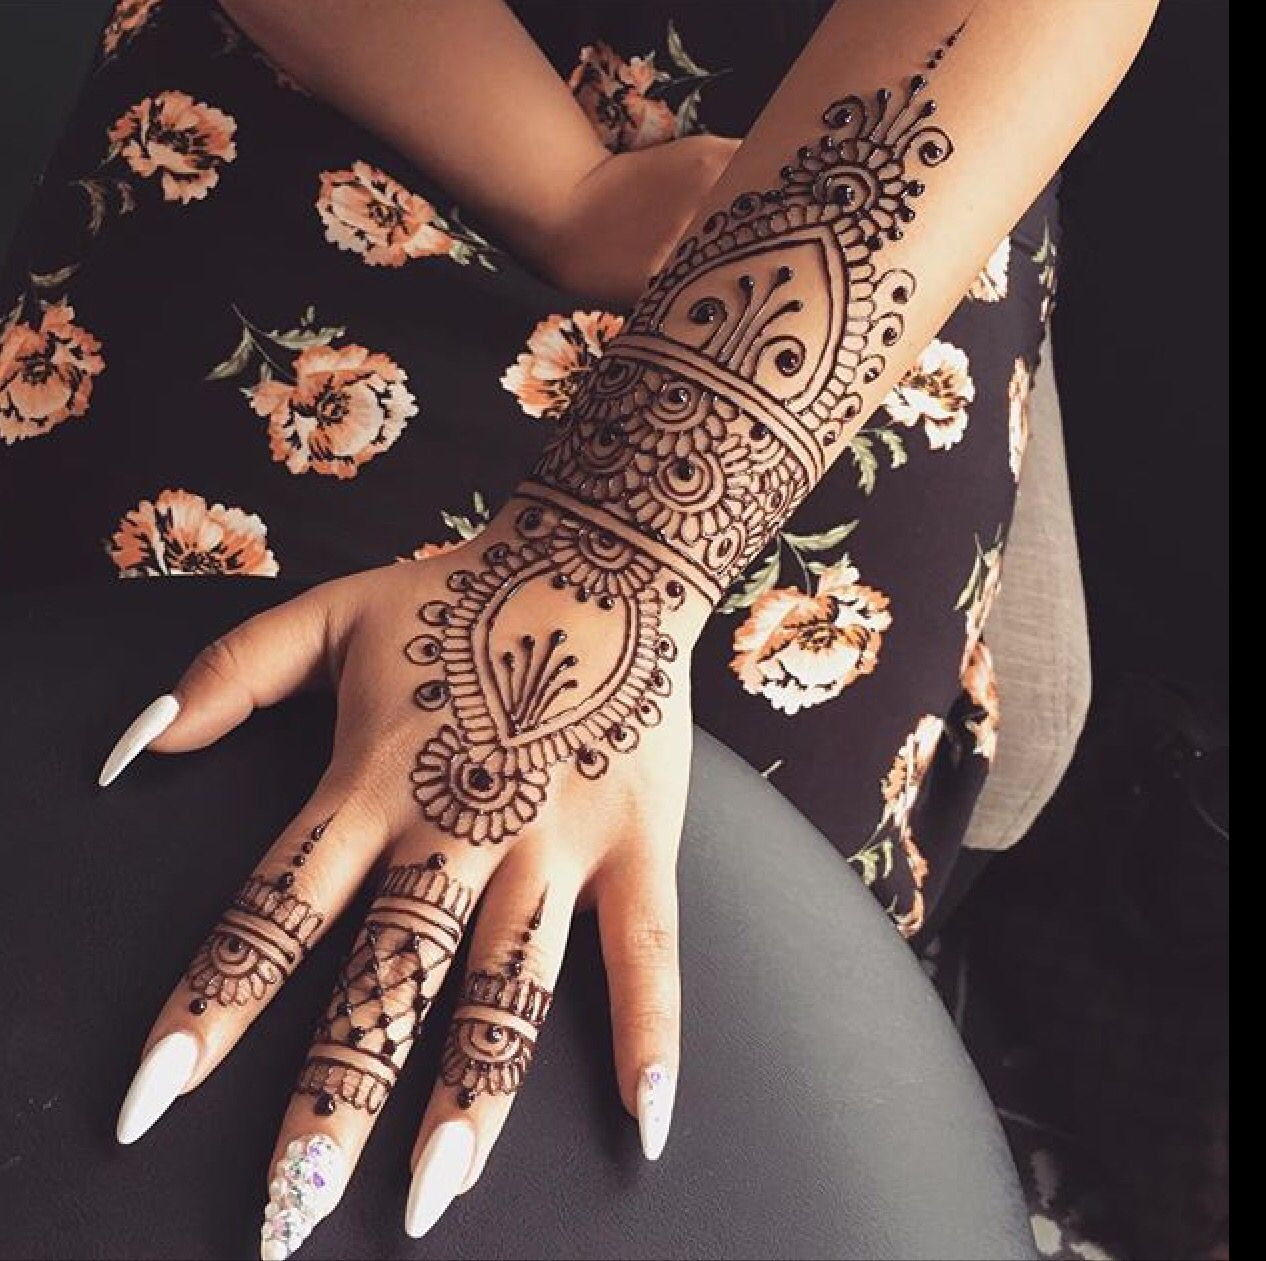 Mehndi Tattoo Real : Pin by jannah sellars on henna art pinterest hennas